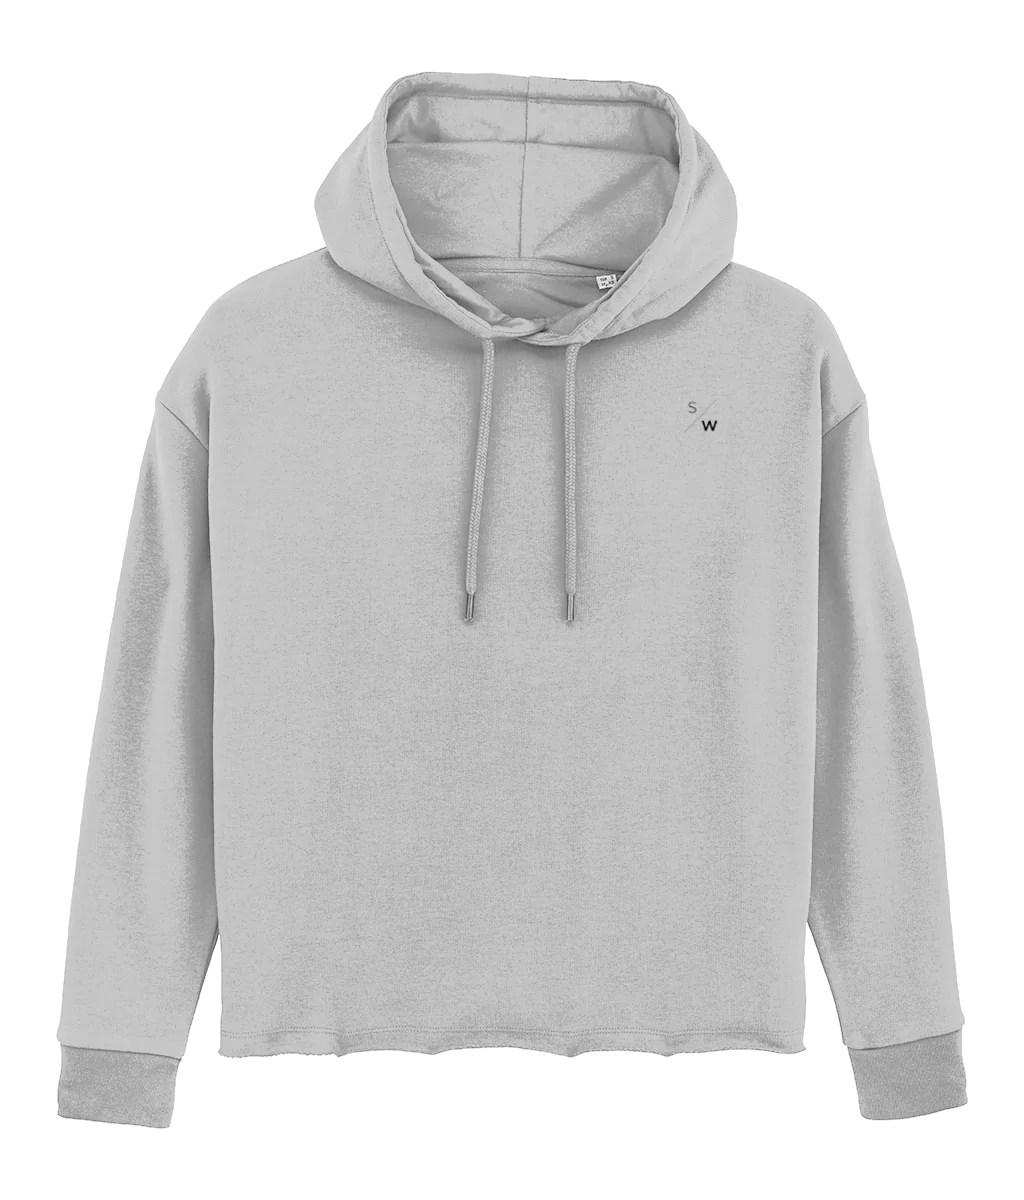 Pullover Hoodie Cut Women S Raw Cut Lettermark Pullover Hoodie Heather Grey